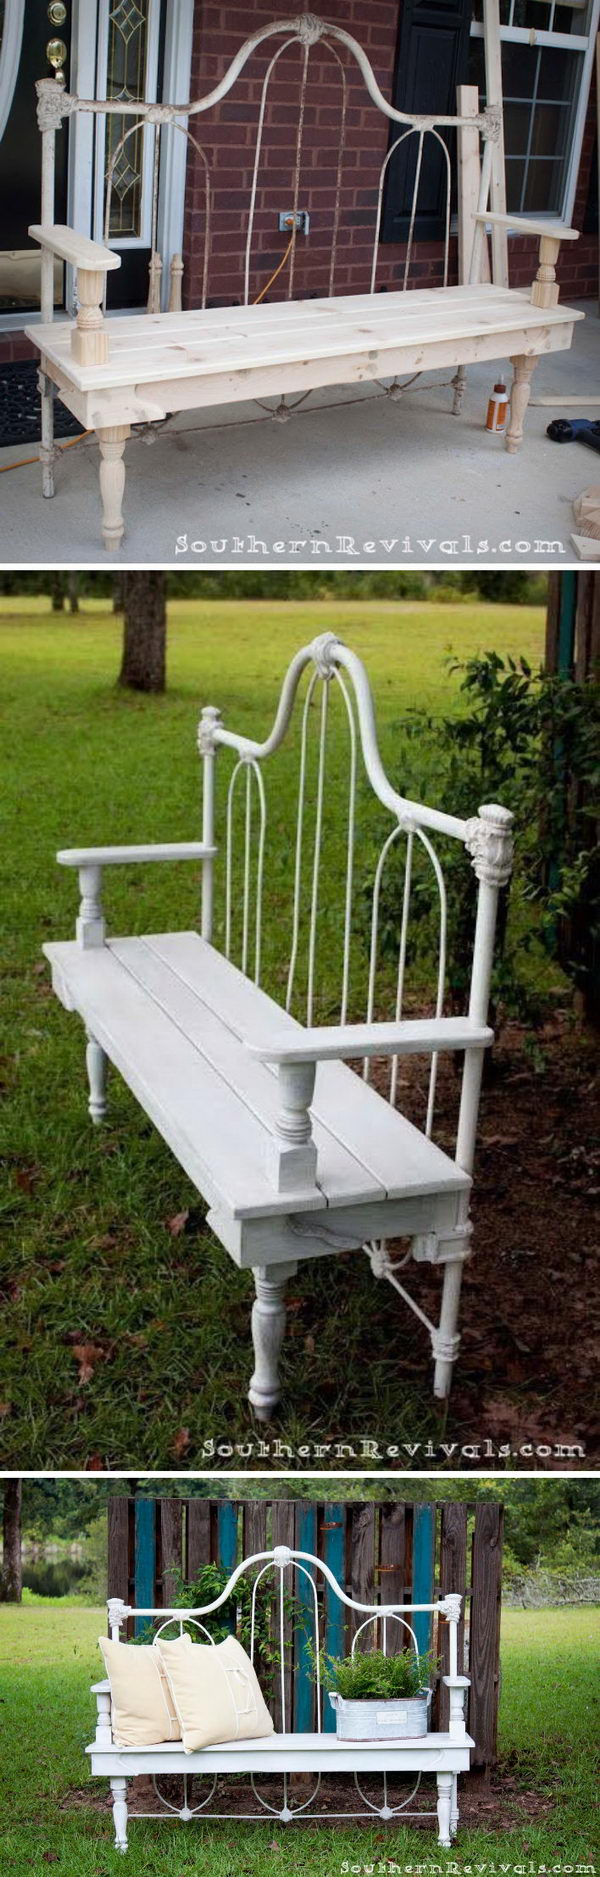 Wondrous 40 Creative Outdoor Bench Diy Ideas And Tutorials 2017 Short Links Chair Design For Home Short Linksinfo